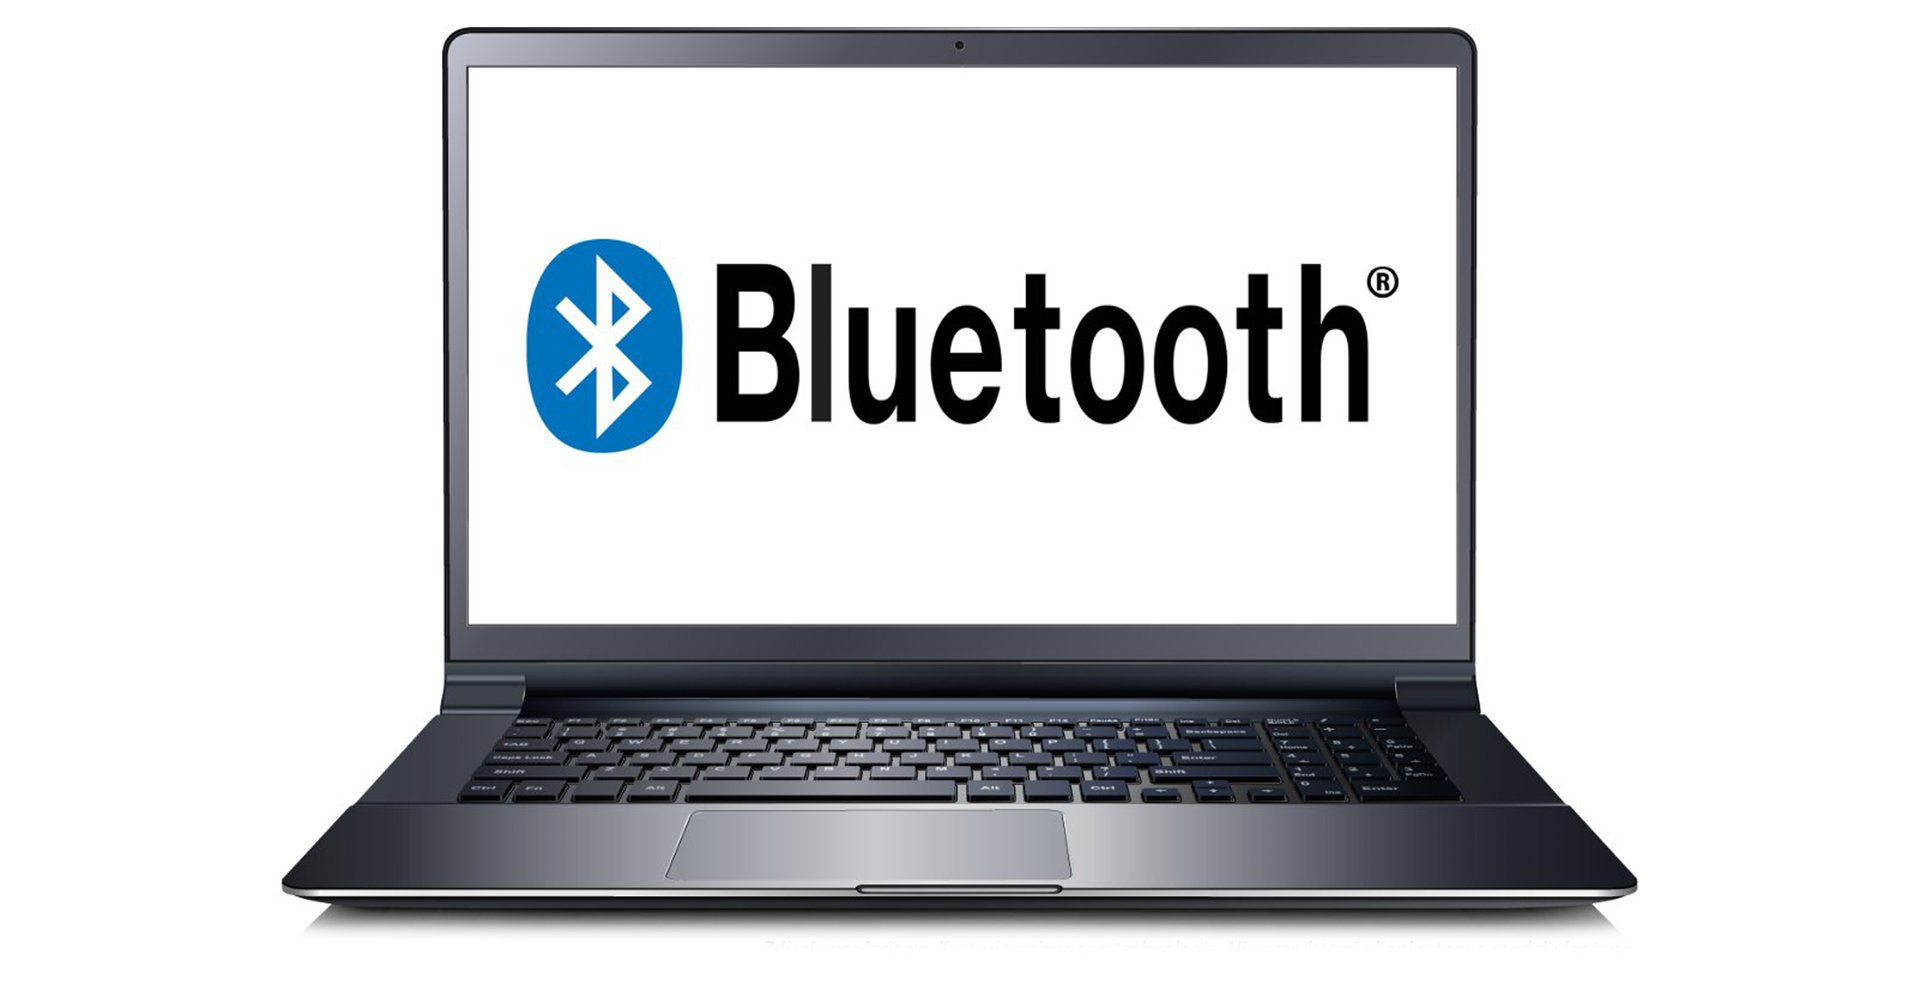 Dell Latitude 7390 i5-8350U 8GB 256GB Win10Pro                             Bluetooth